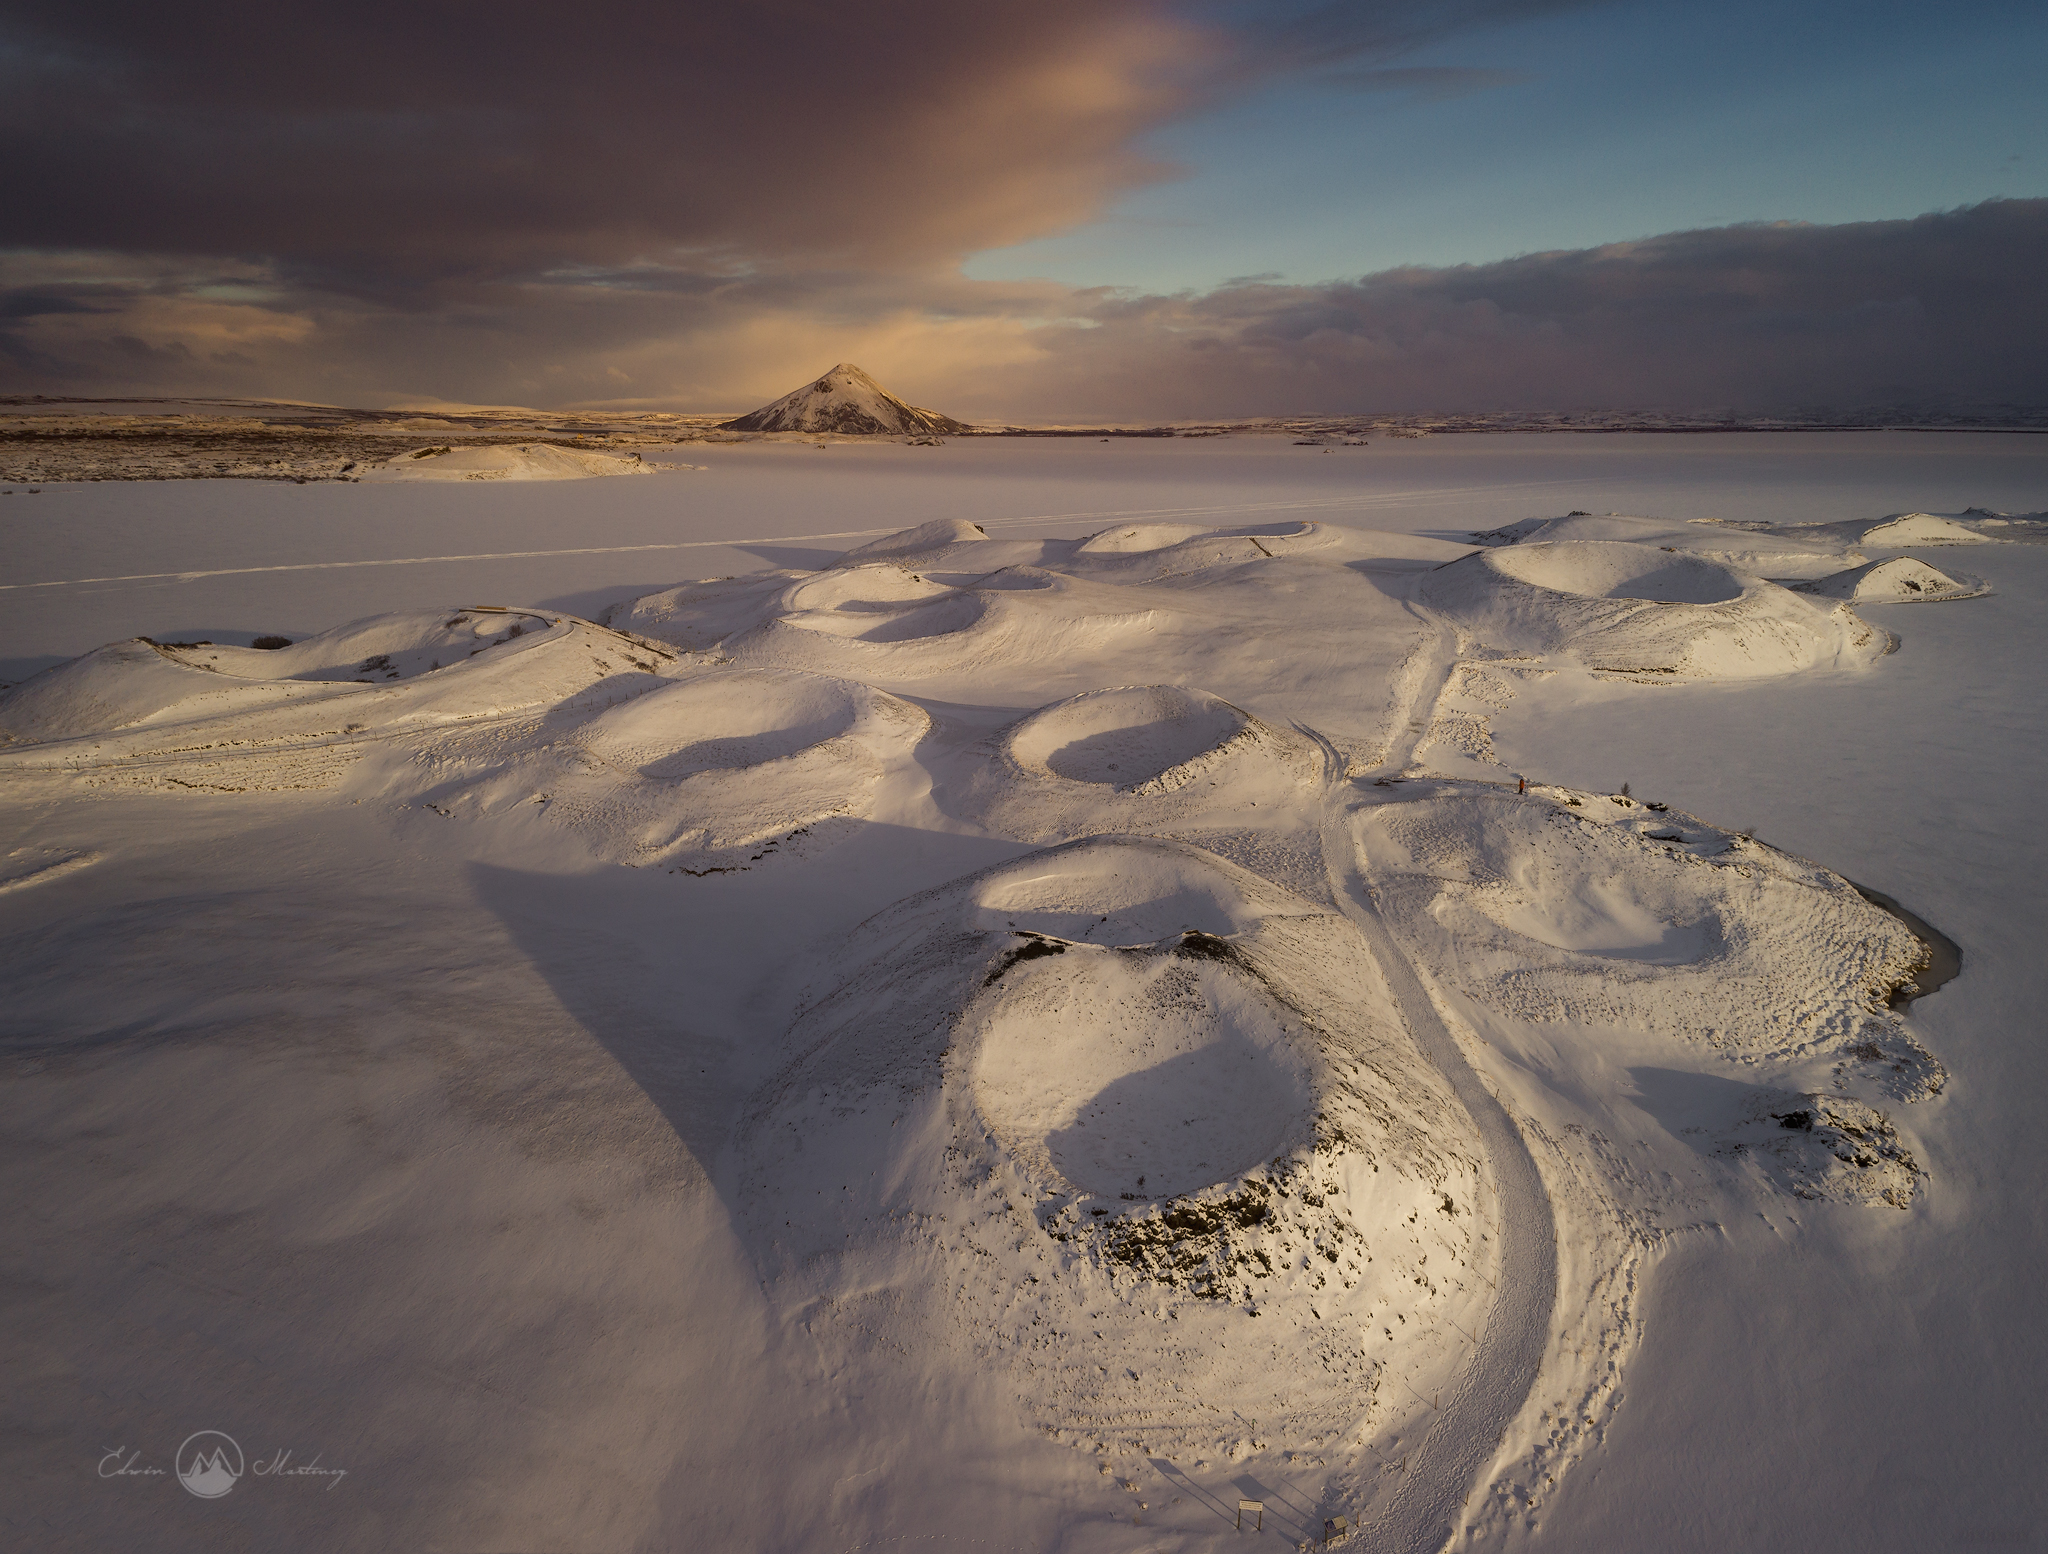 Iceland in the wintertime cpvered in snow and ice makes the perfect subject for a landscape photographer.